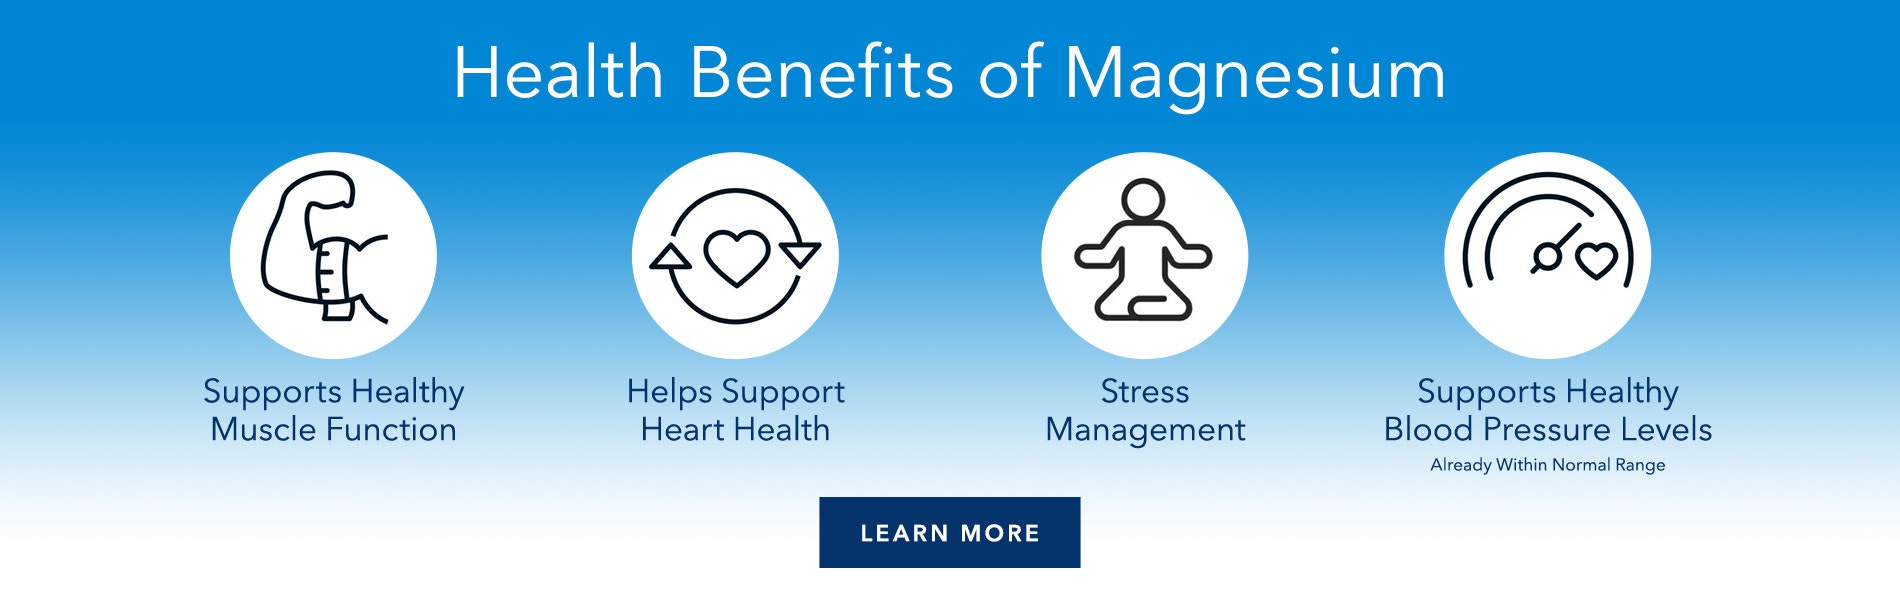 Health Benefits of Magnesium. Learn More.